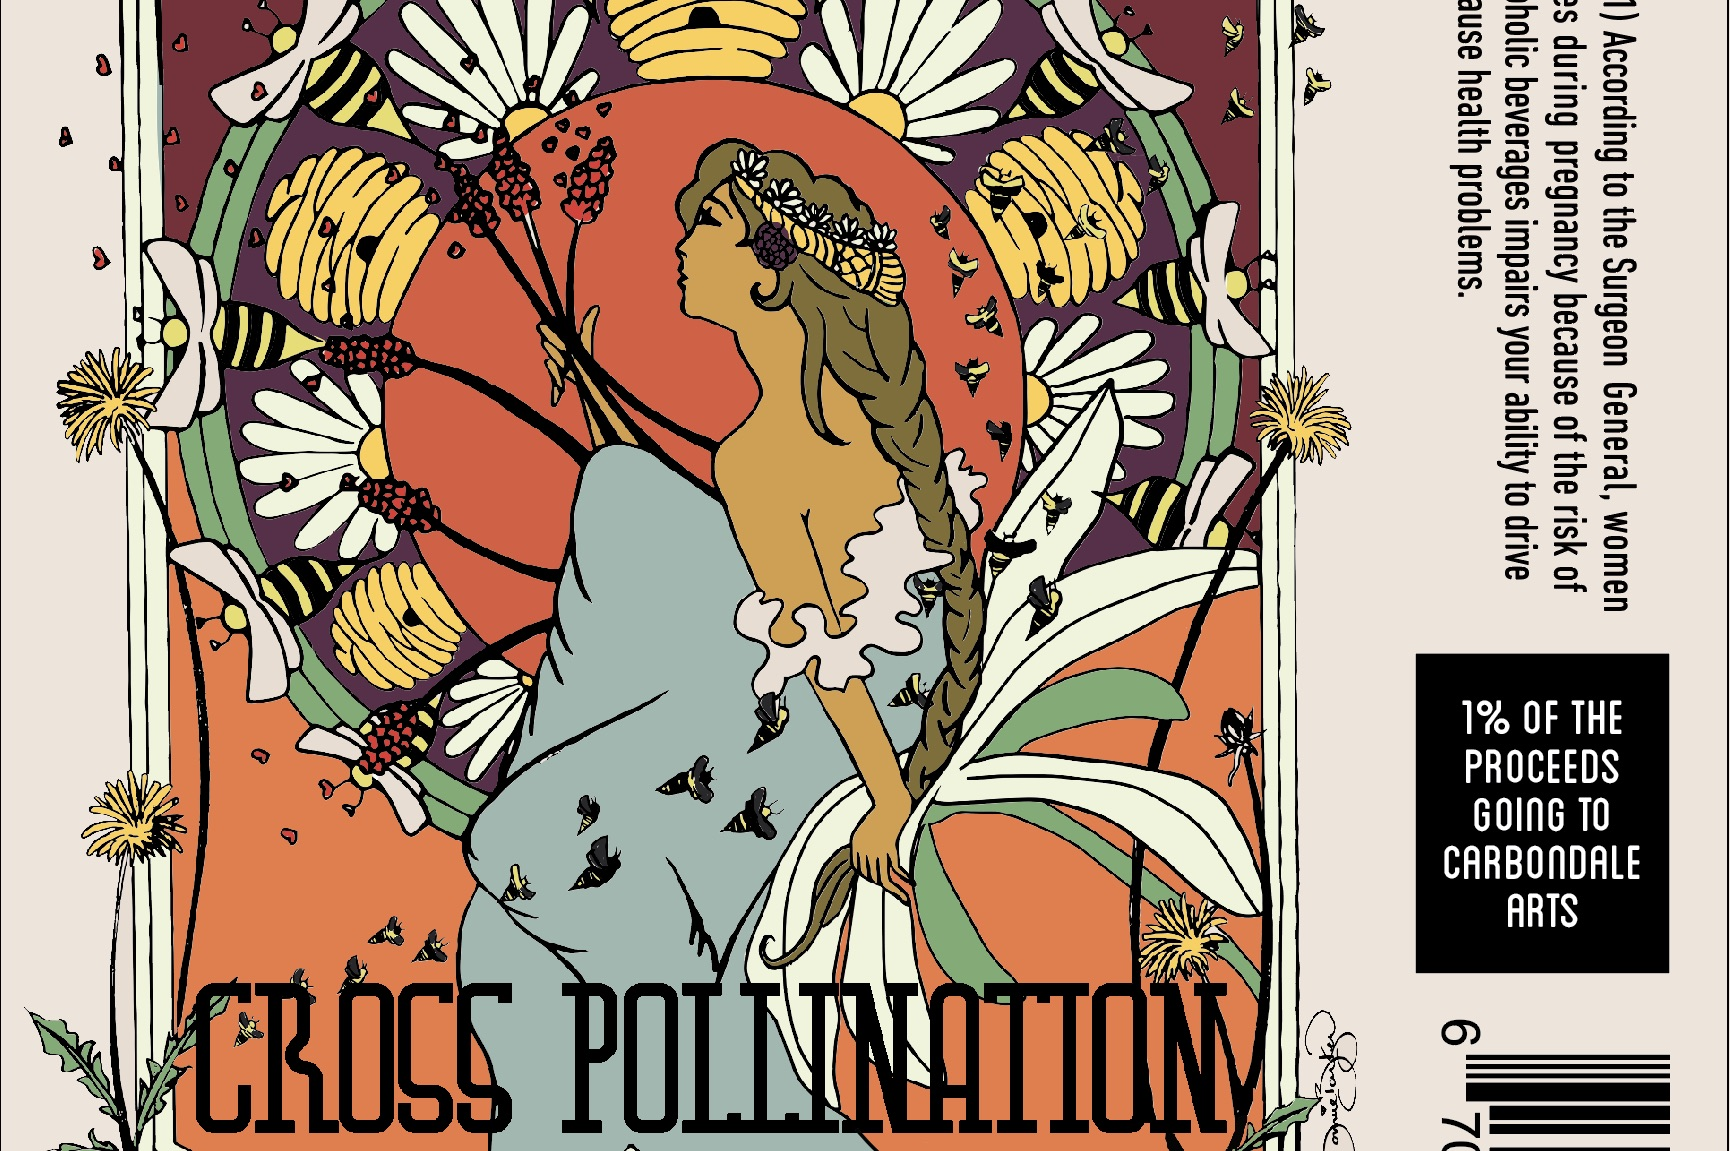 Cross-Pollination Collaboration Beer Label